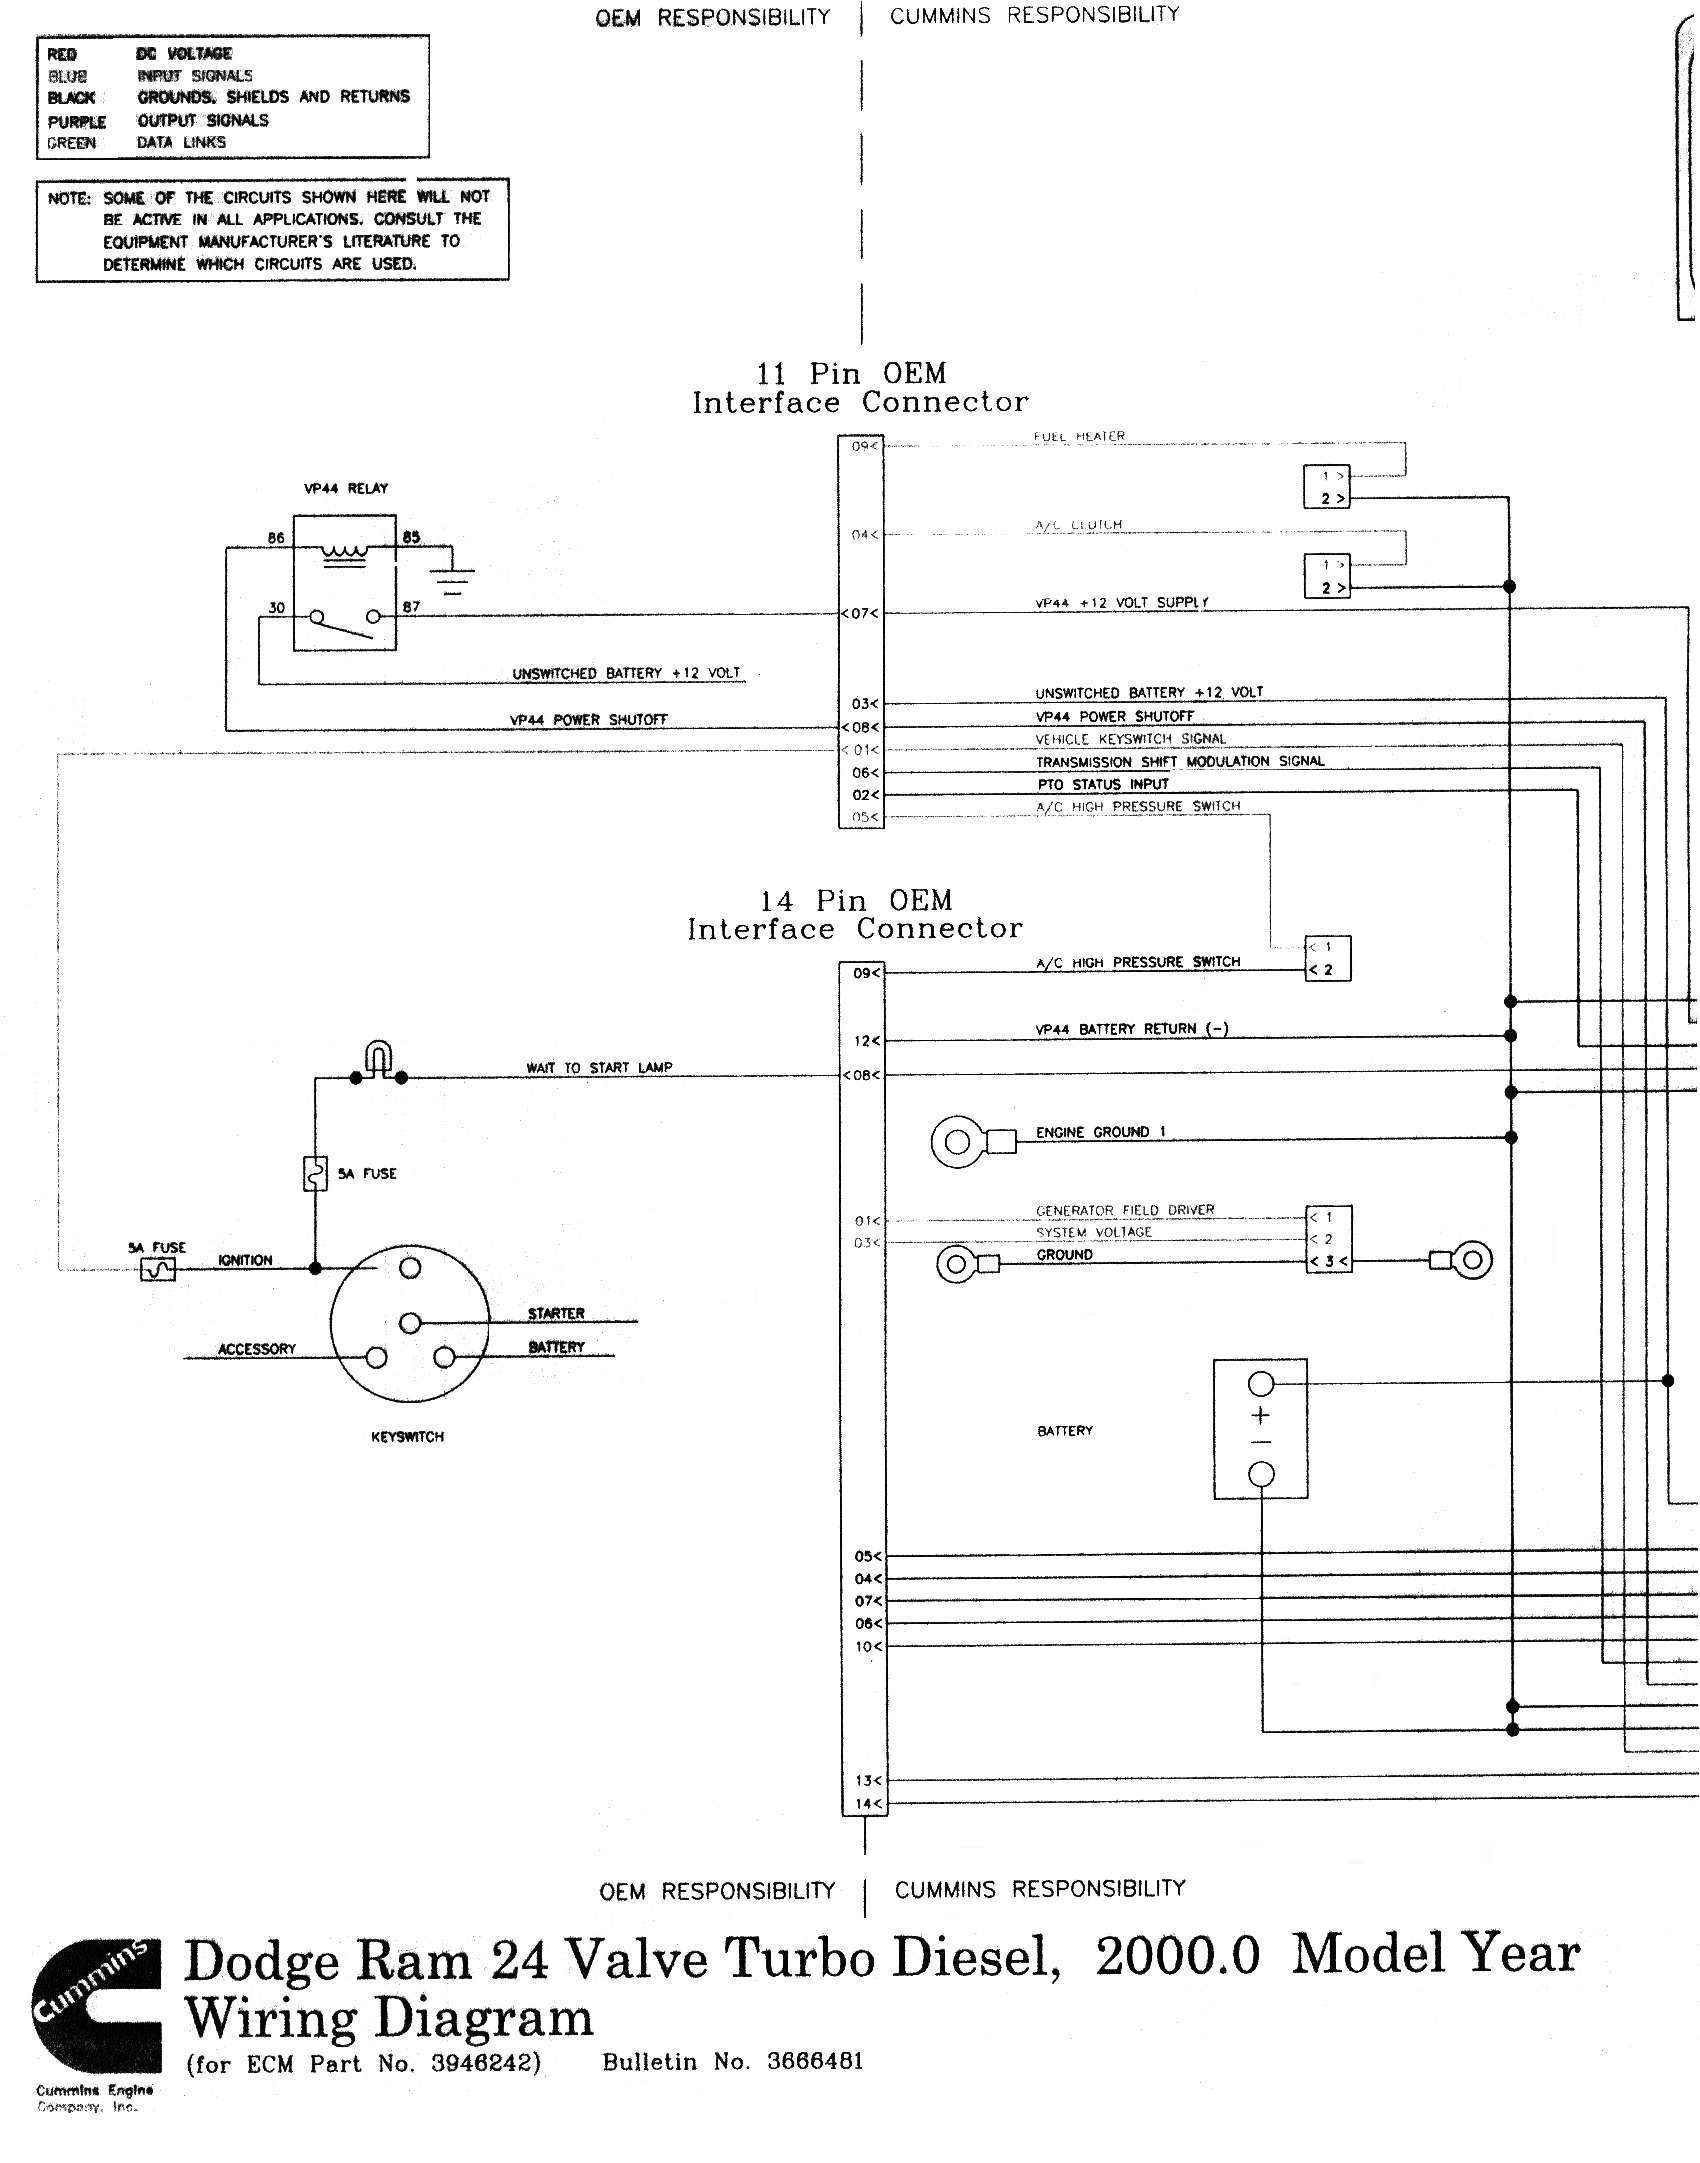 Dodge Ram Wiring Diagram Unique | Wiring Diagram Image